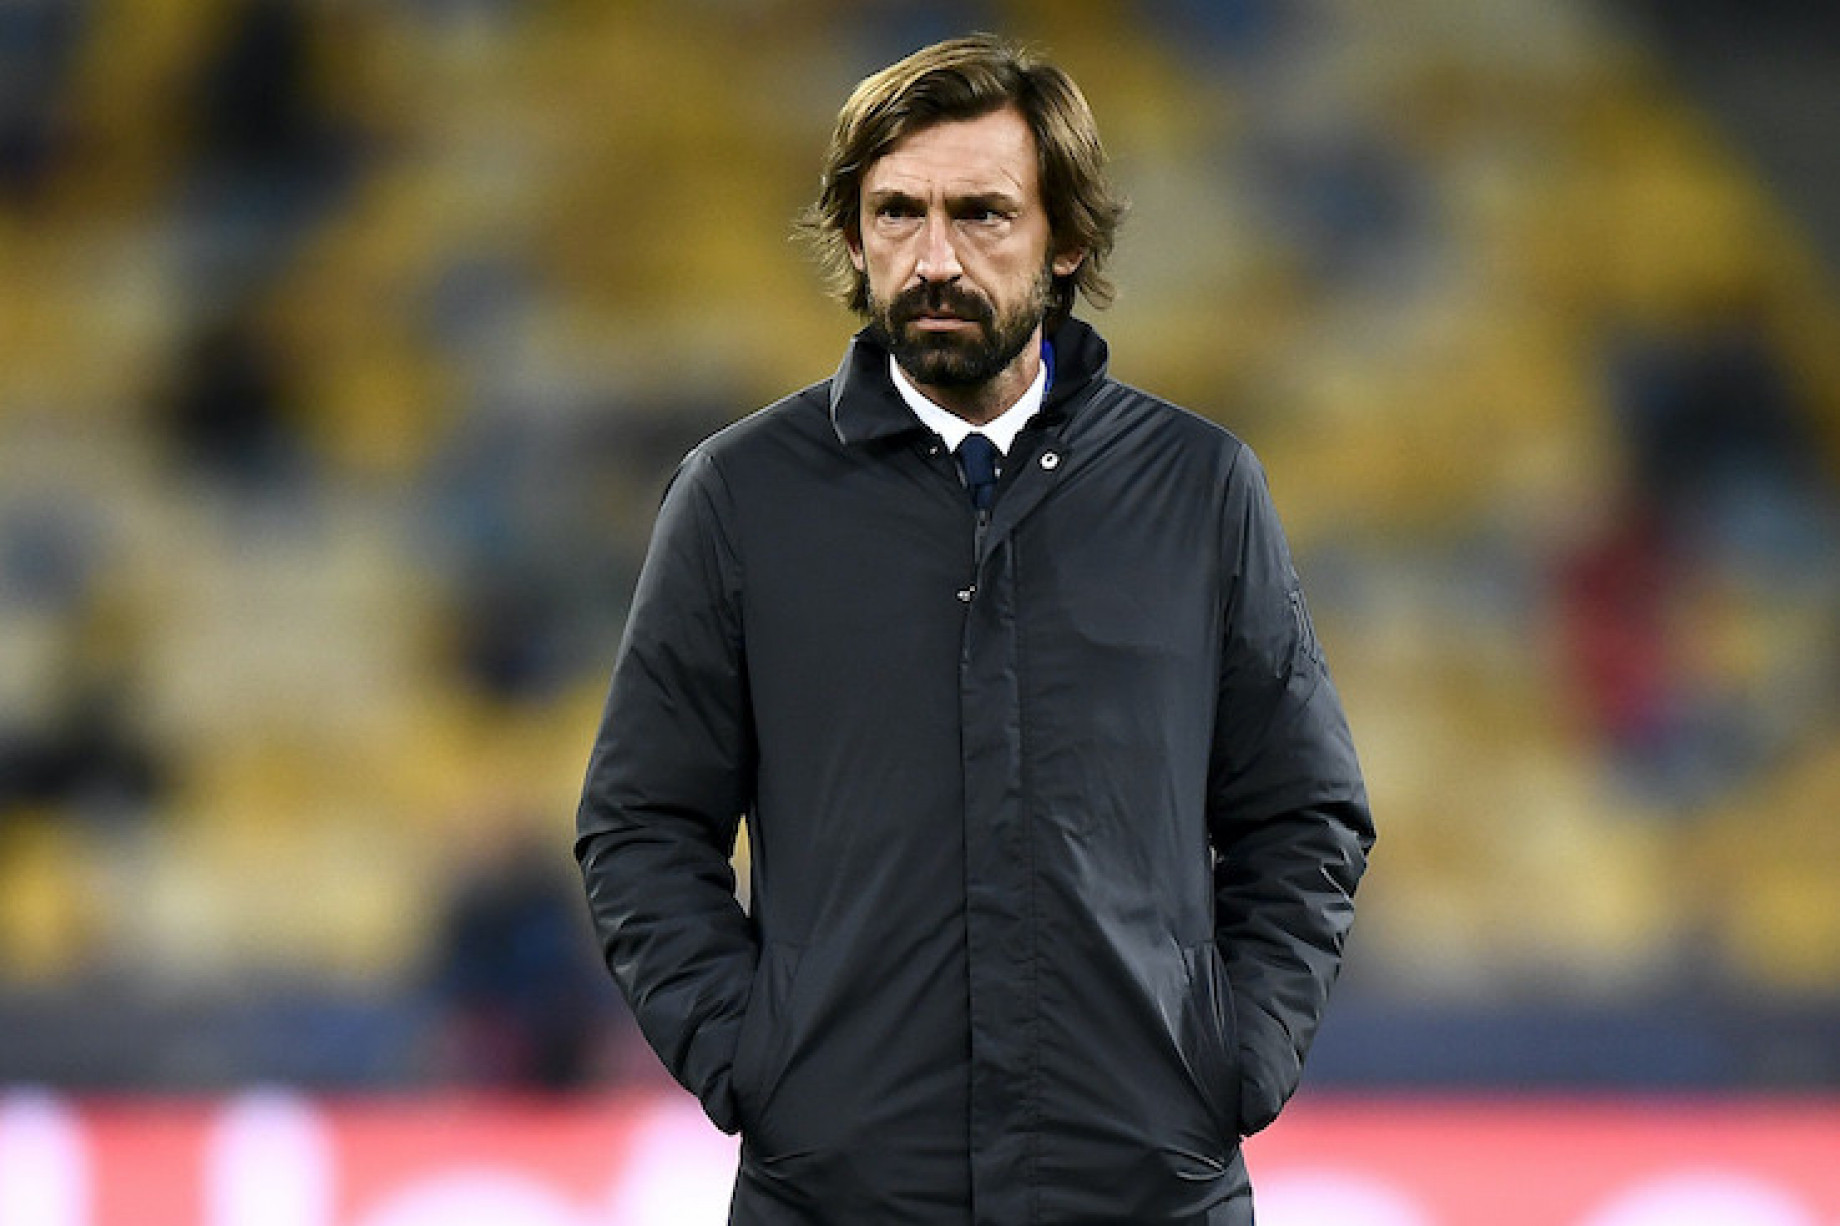 pirlo_image GALLERY